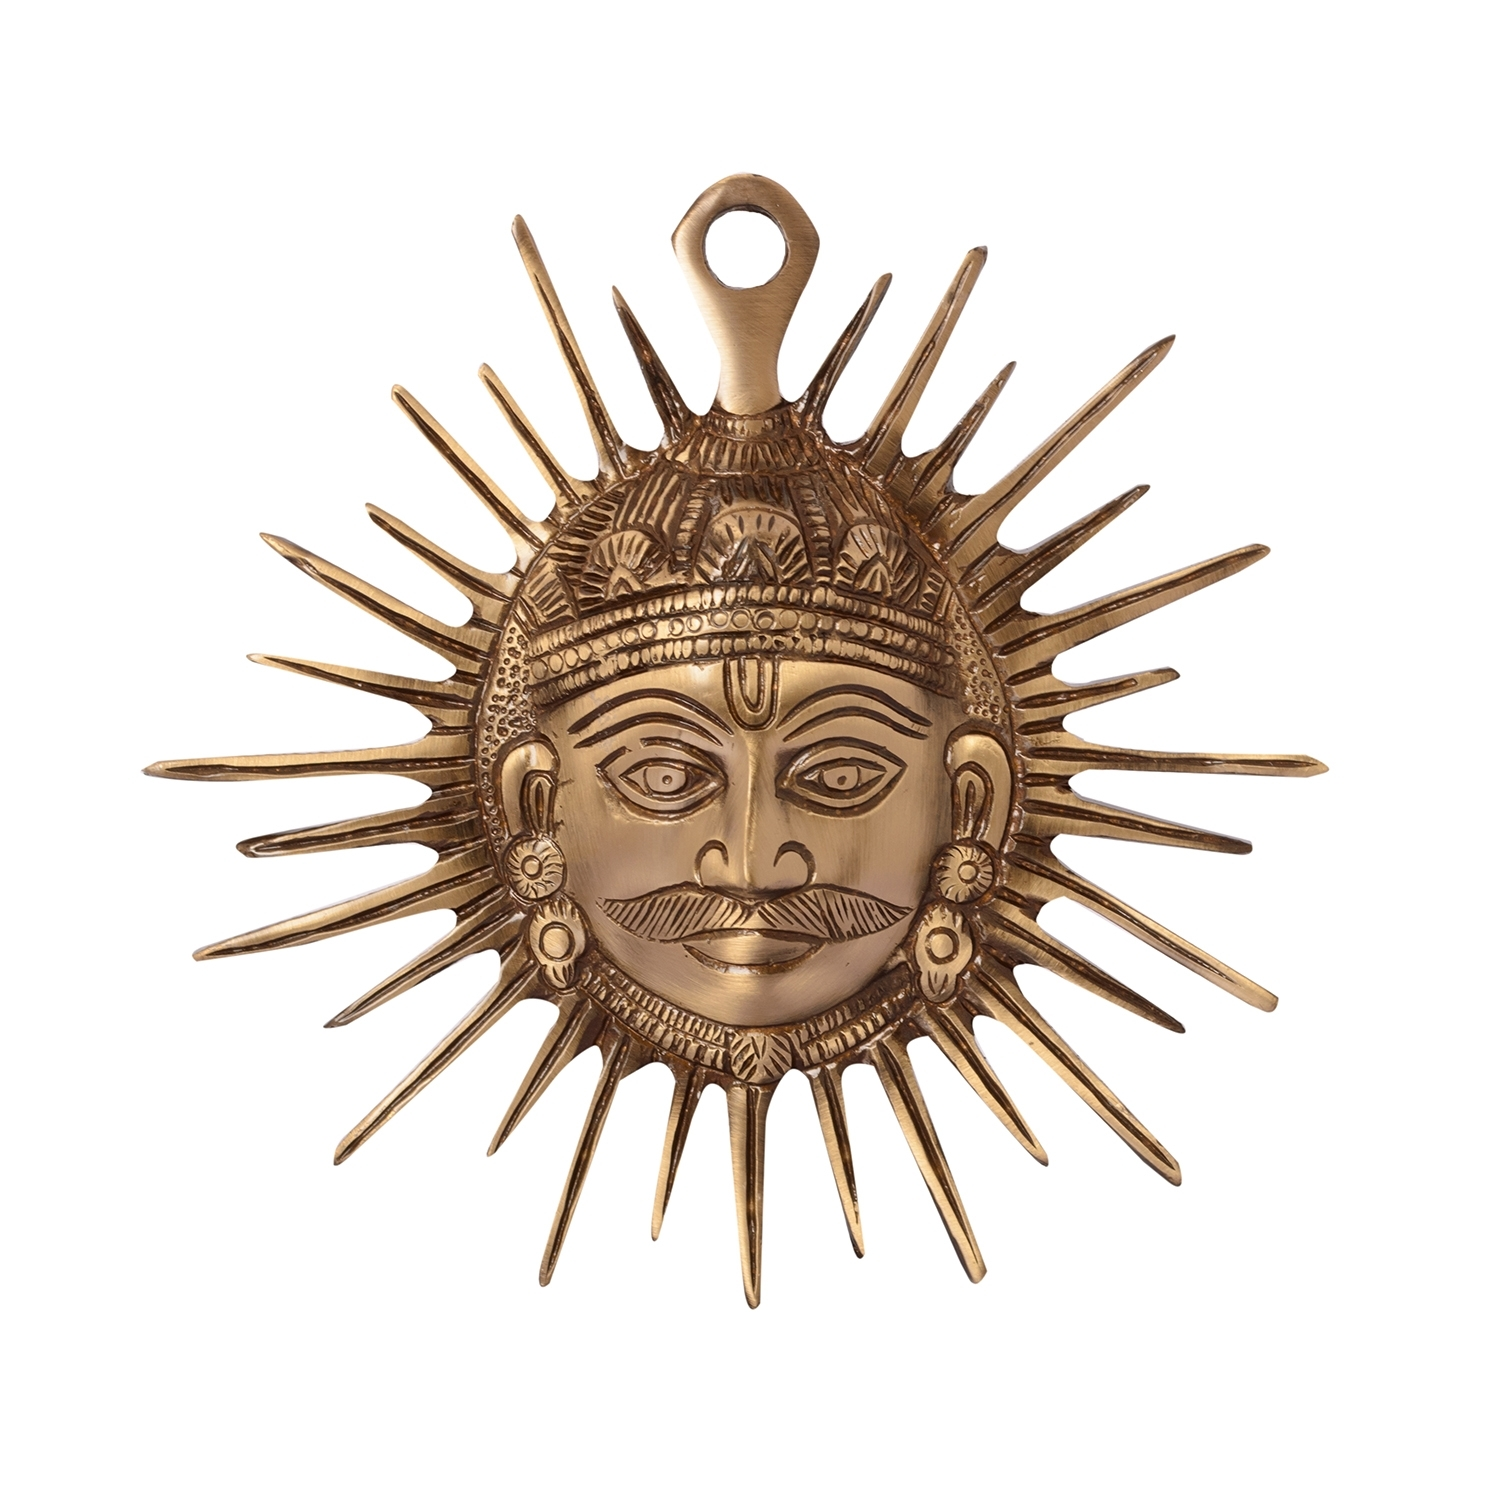 Smiling Surya Brass Wall Hanging Indian Home Decor